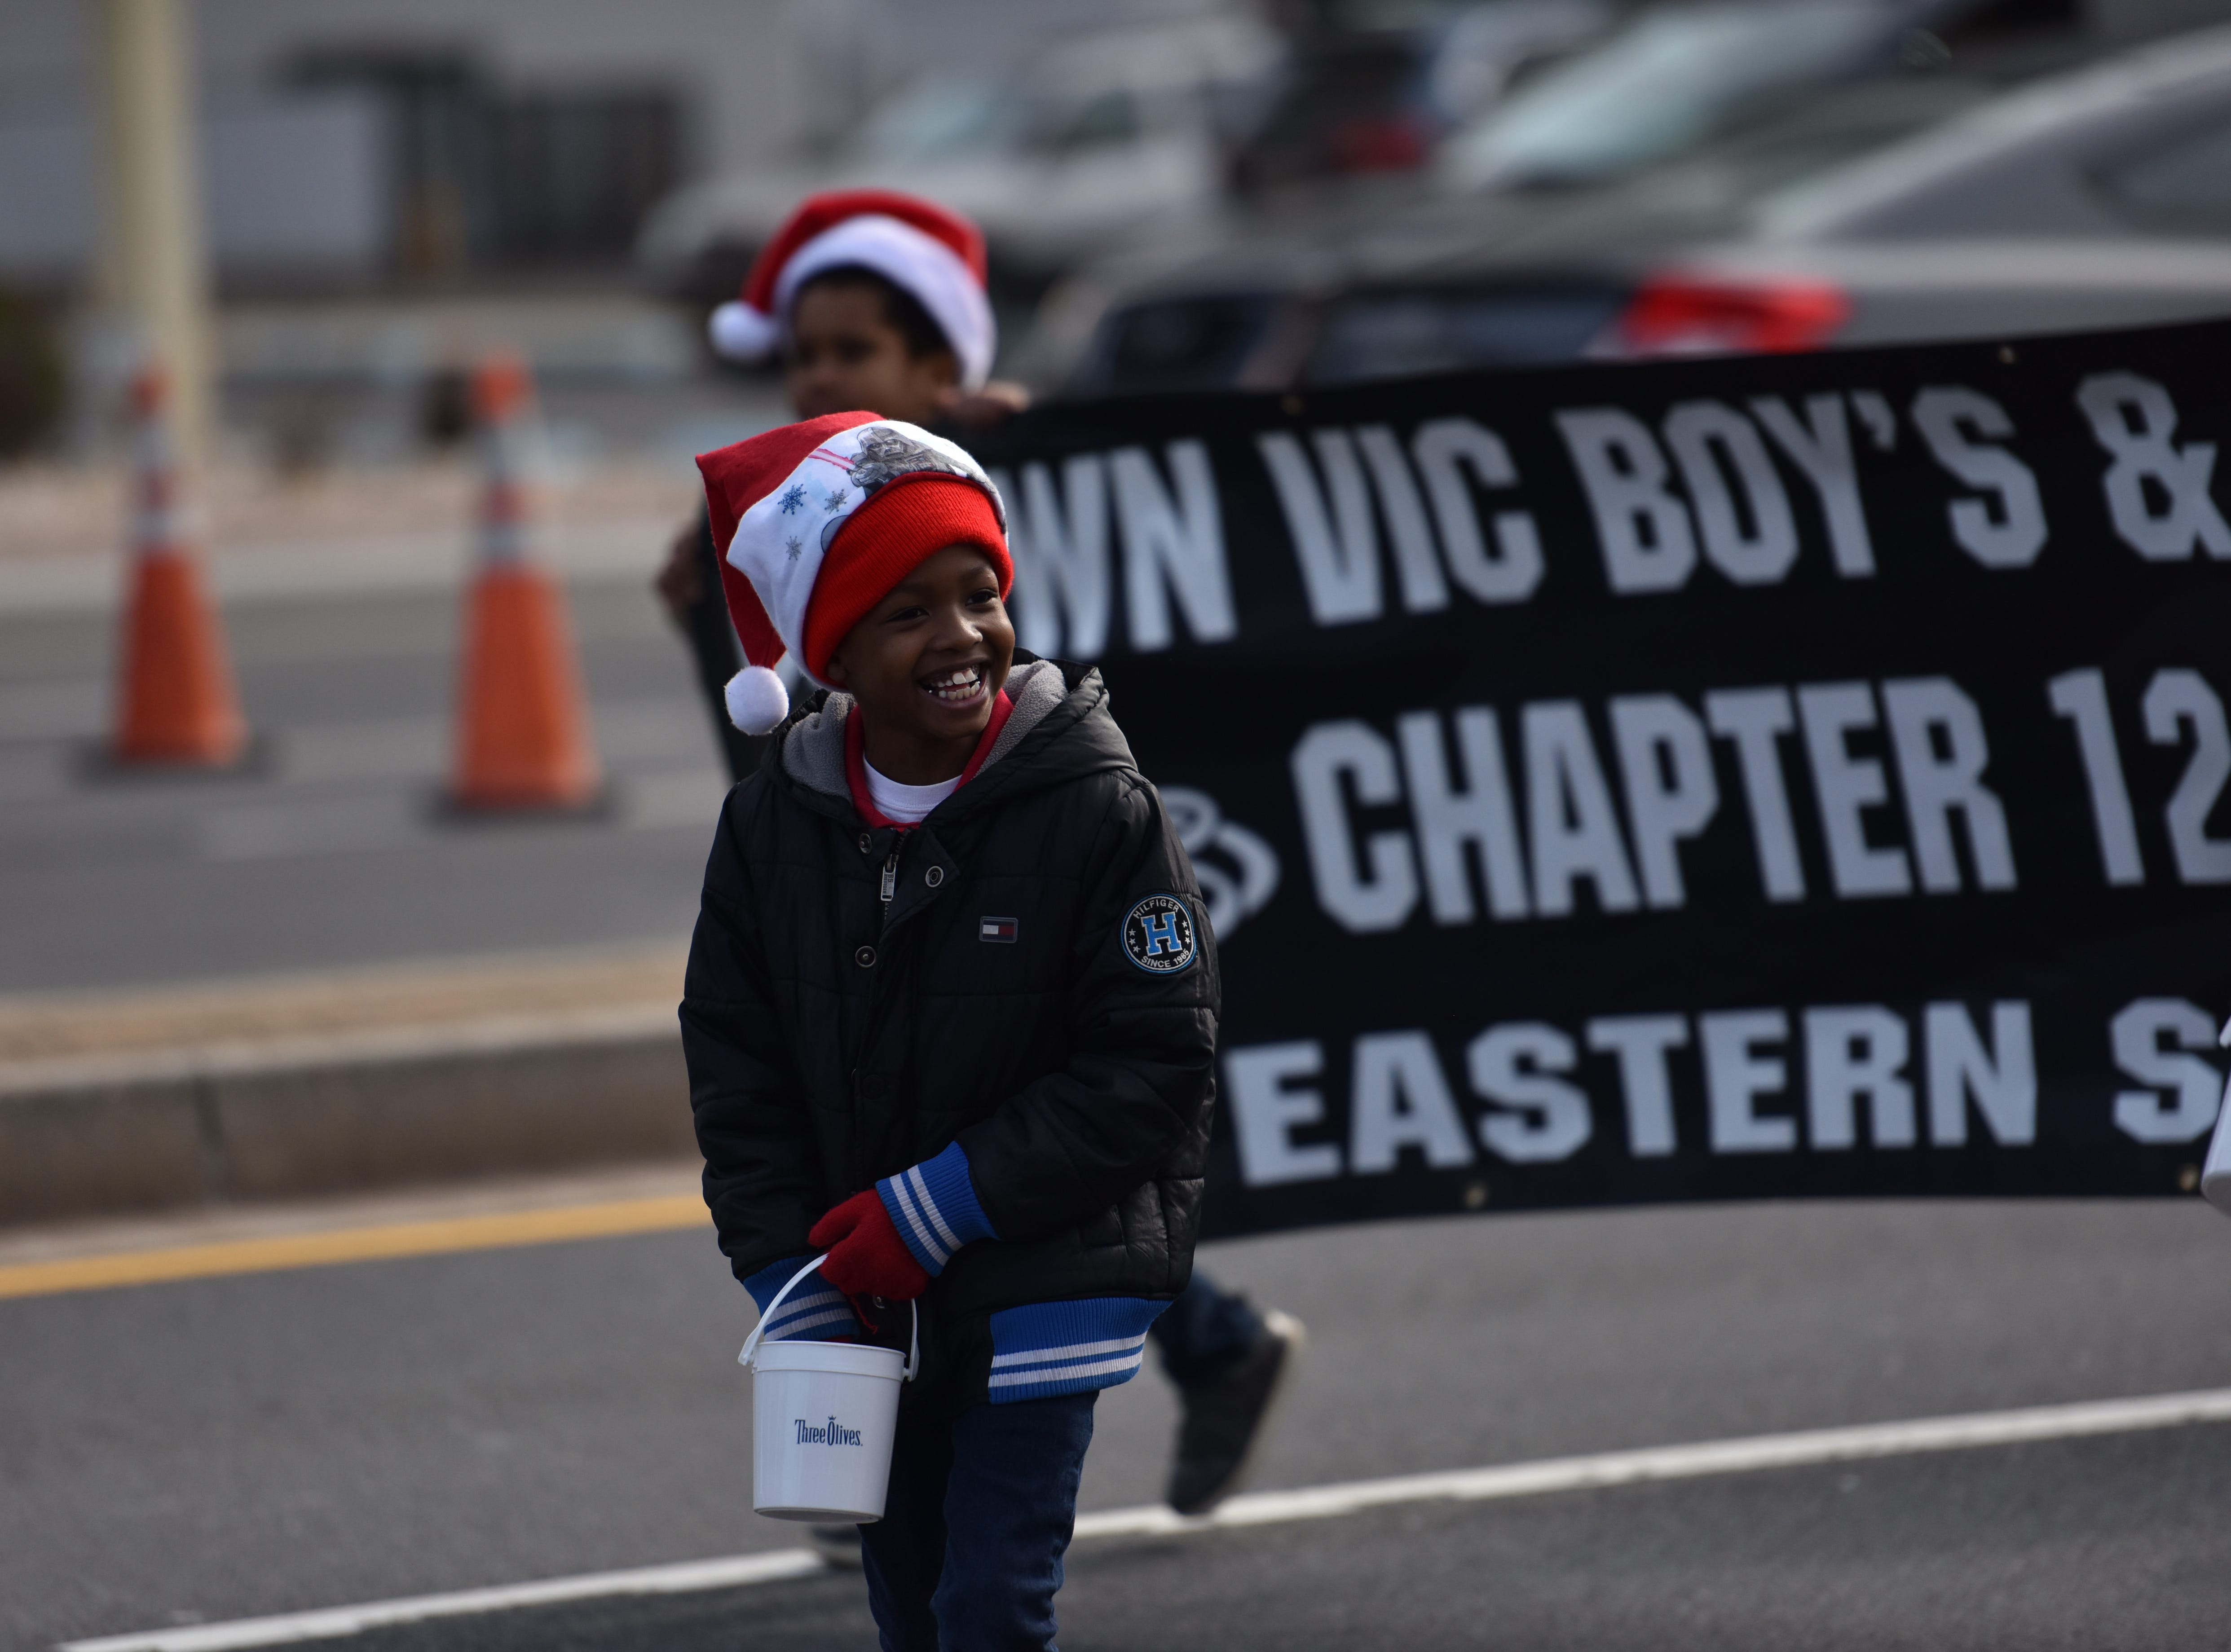 A Boy from Crown Vic Boy's and Girls of Eastern Shore smiling at parade goers at the Ocean City Christmas parade.